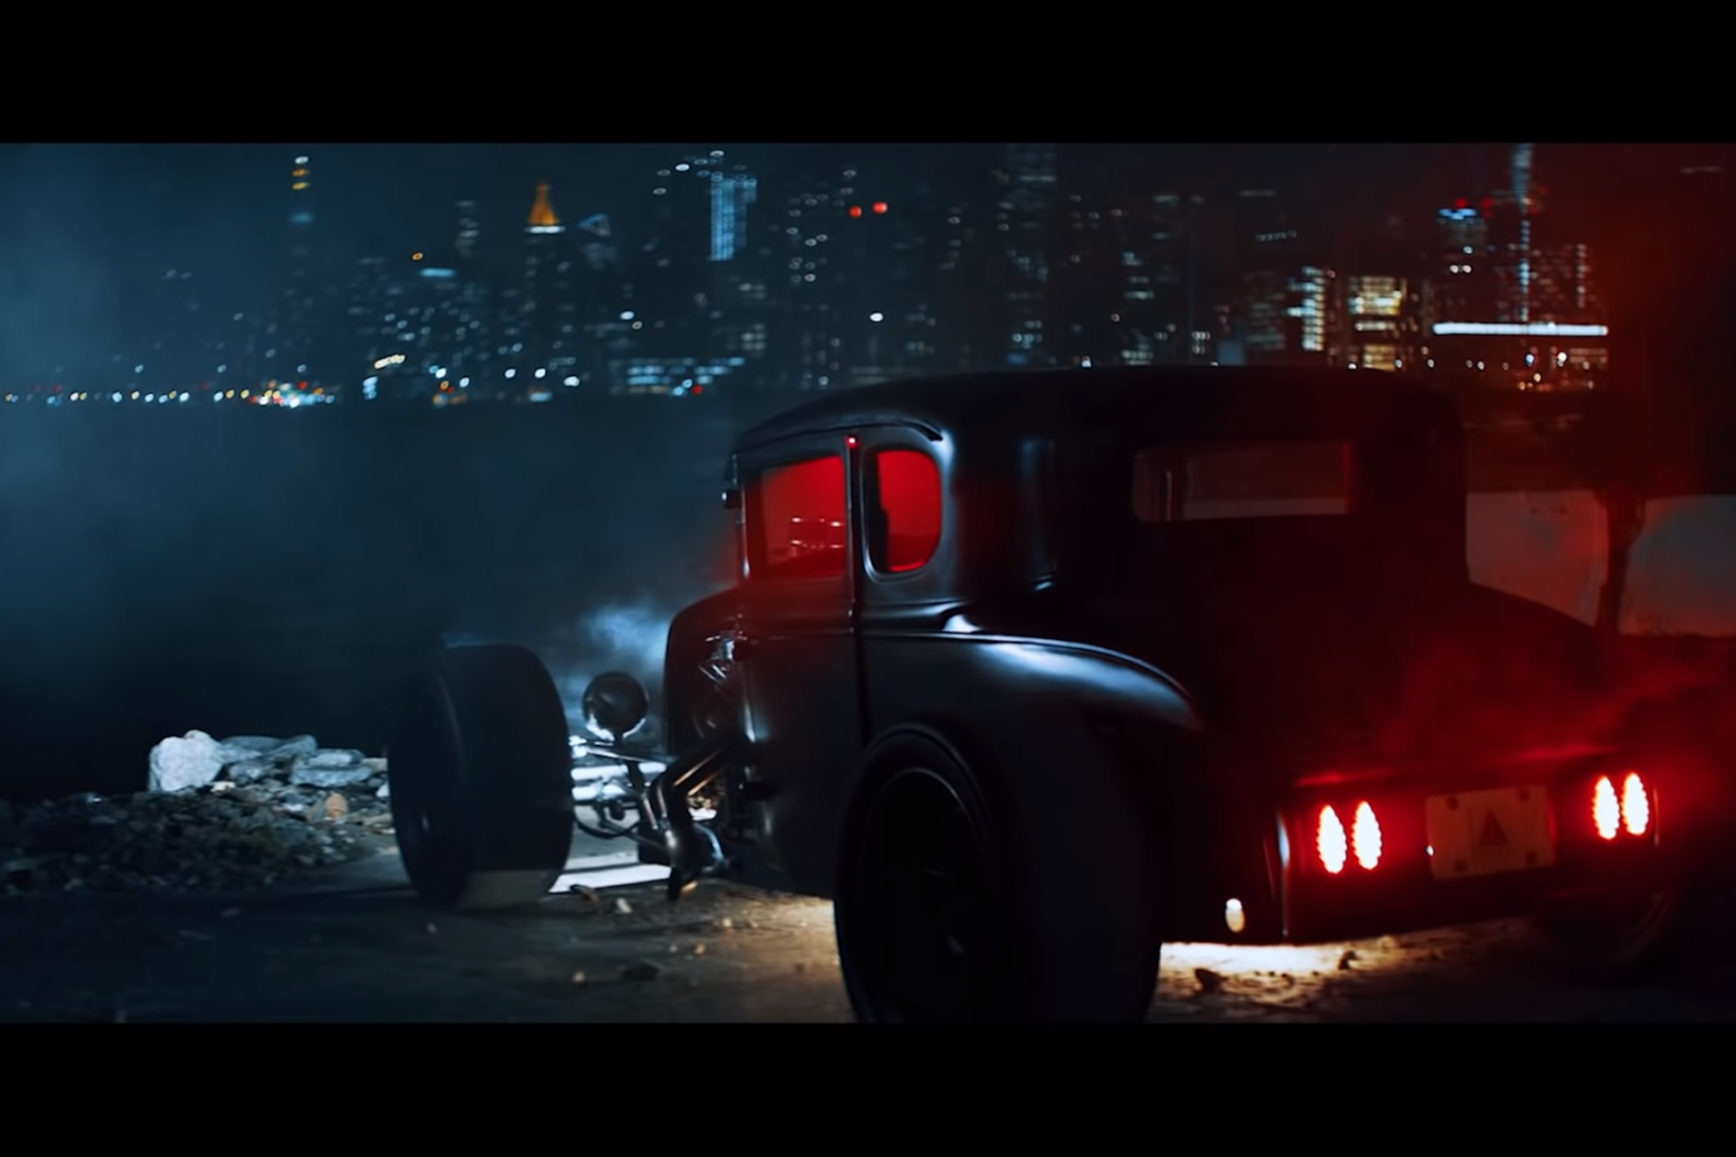 REDLIGHT -NGHTMRE & A$AP Ferg -2019 - music video clip